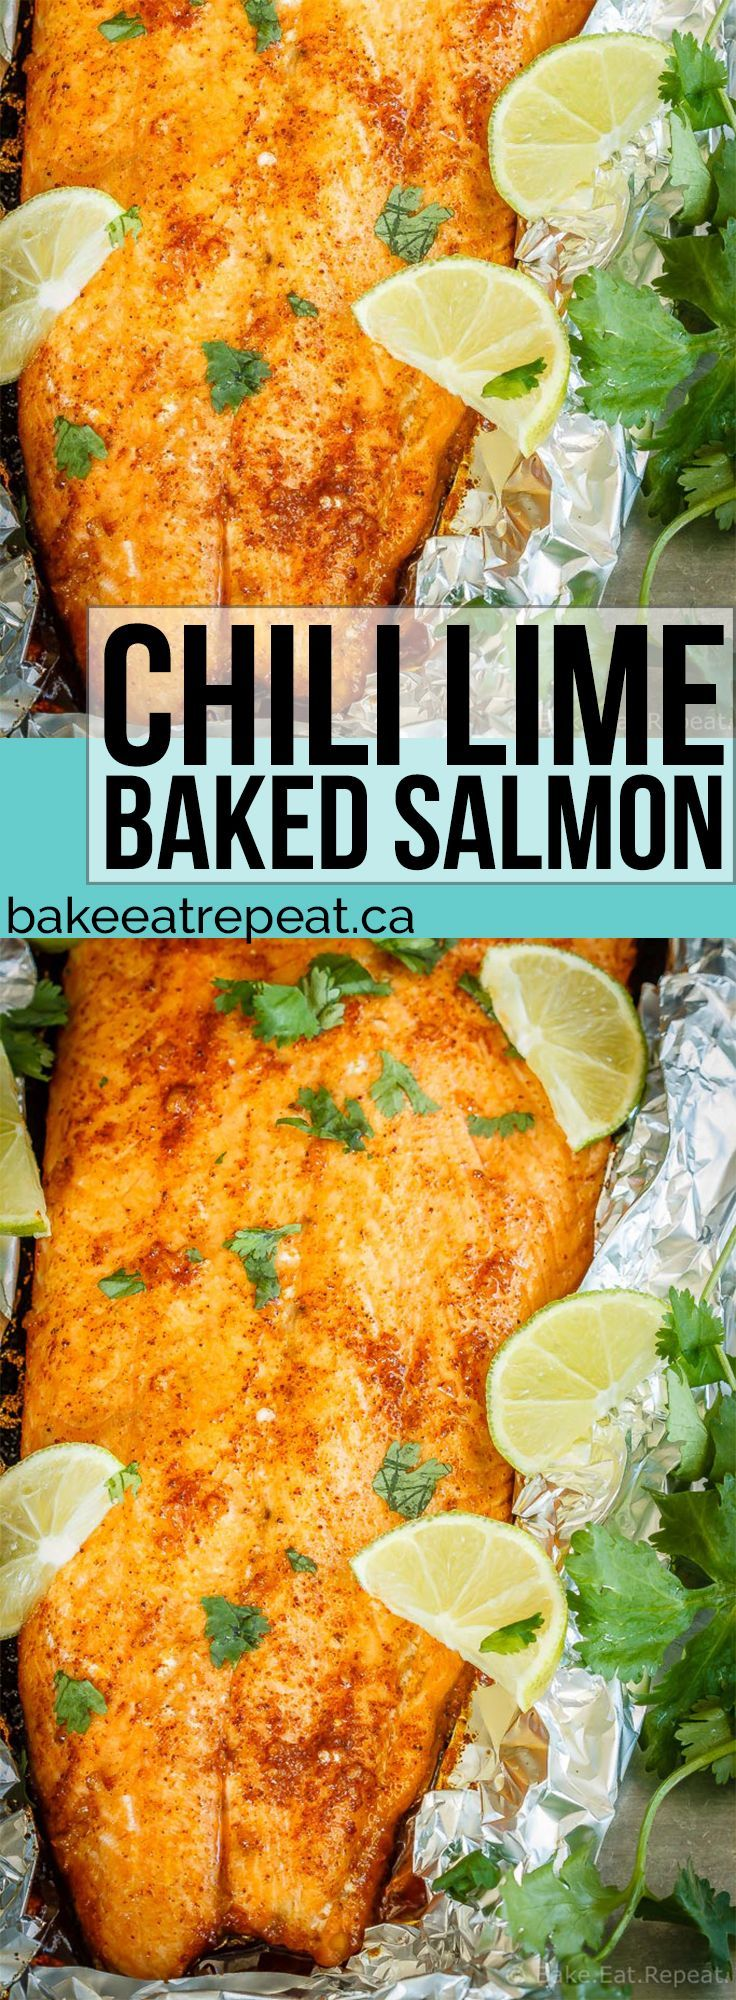 A tasty 30 minute meal that the whole family will love, this chili lime baked salmon comes together quickly and is absolutely delicious! #salmon #30MinuteMeal